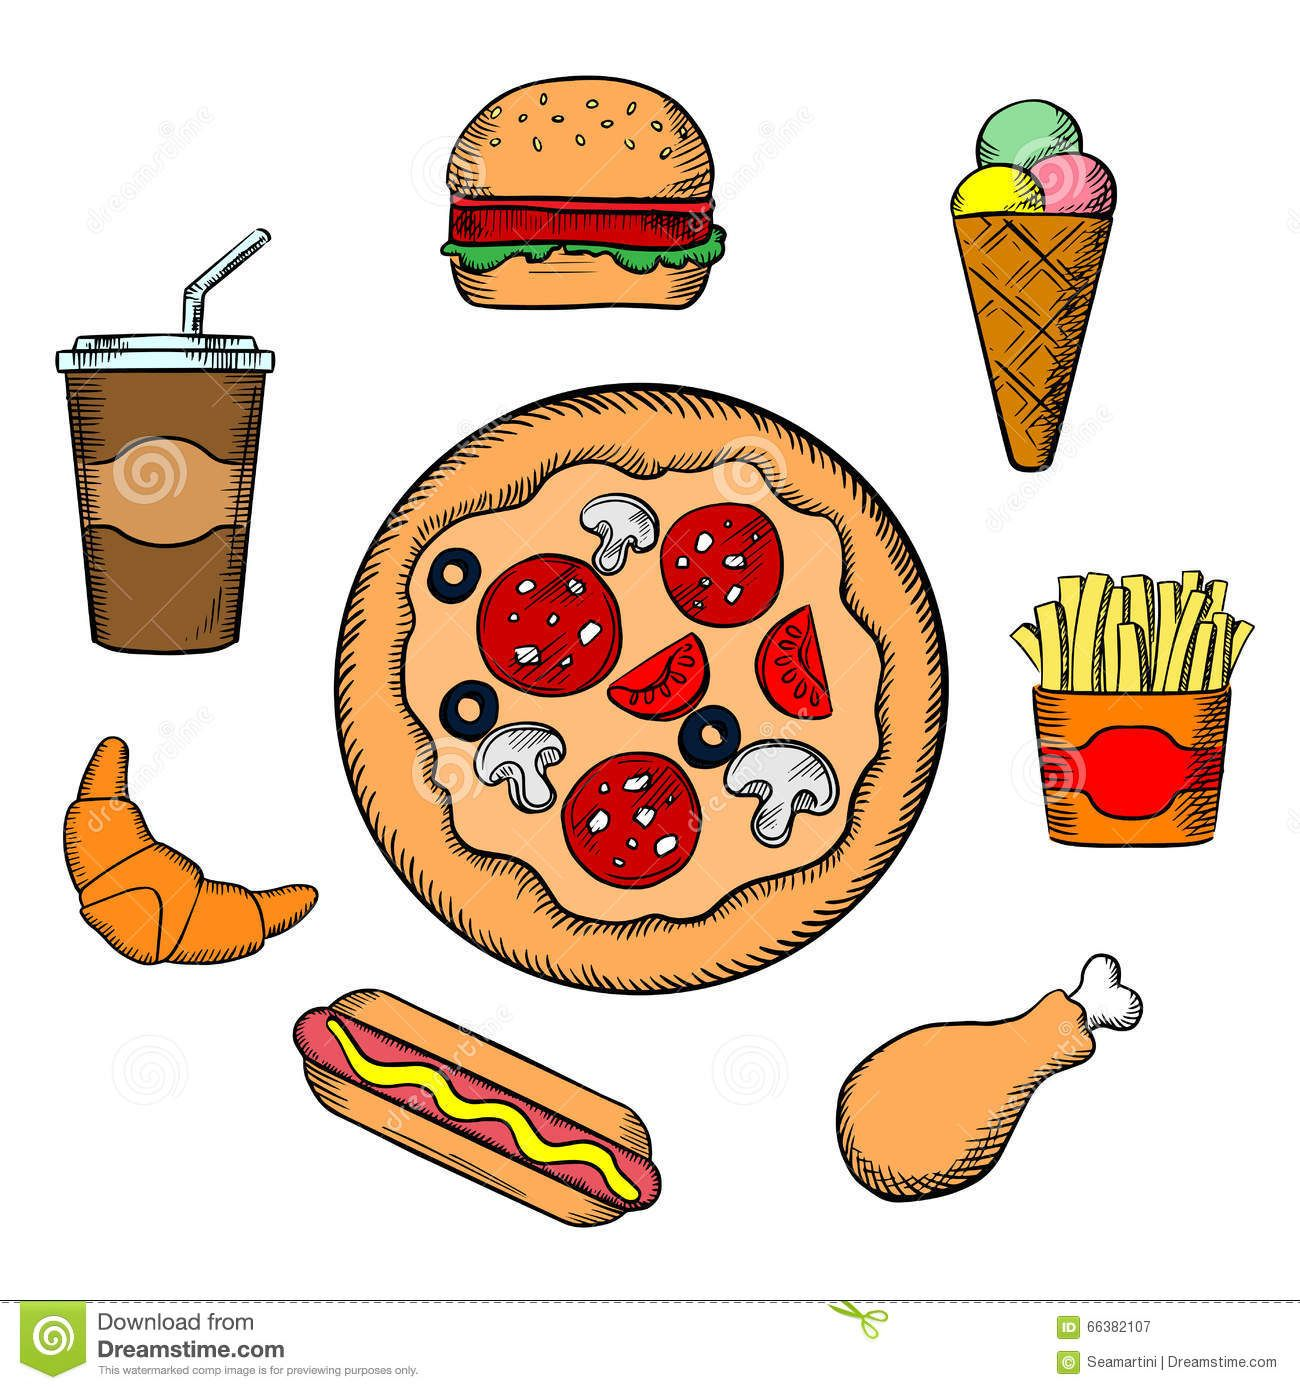 Pizza Burger Fries Ice Cream Soda Fast food icons with